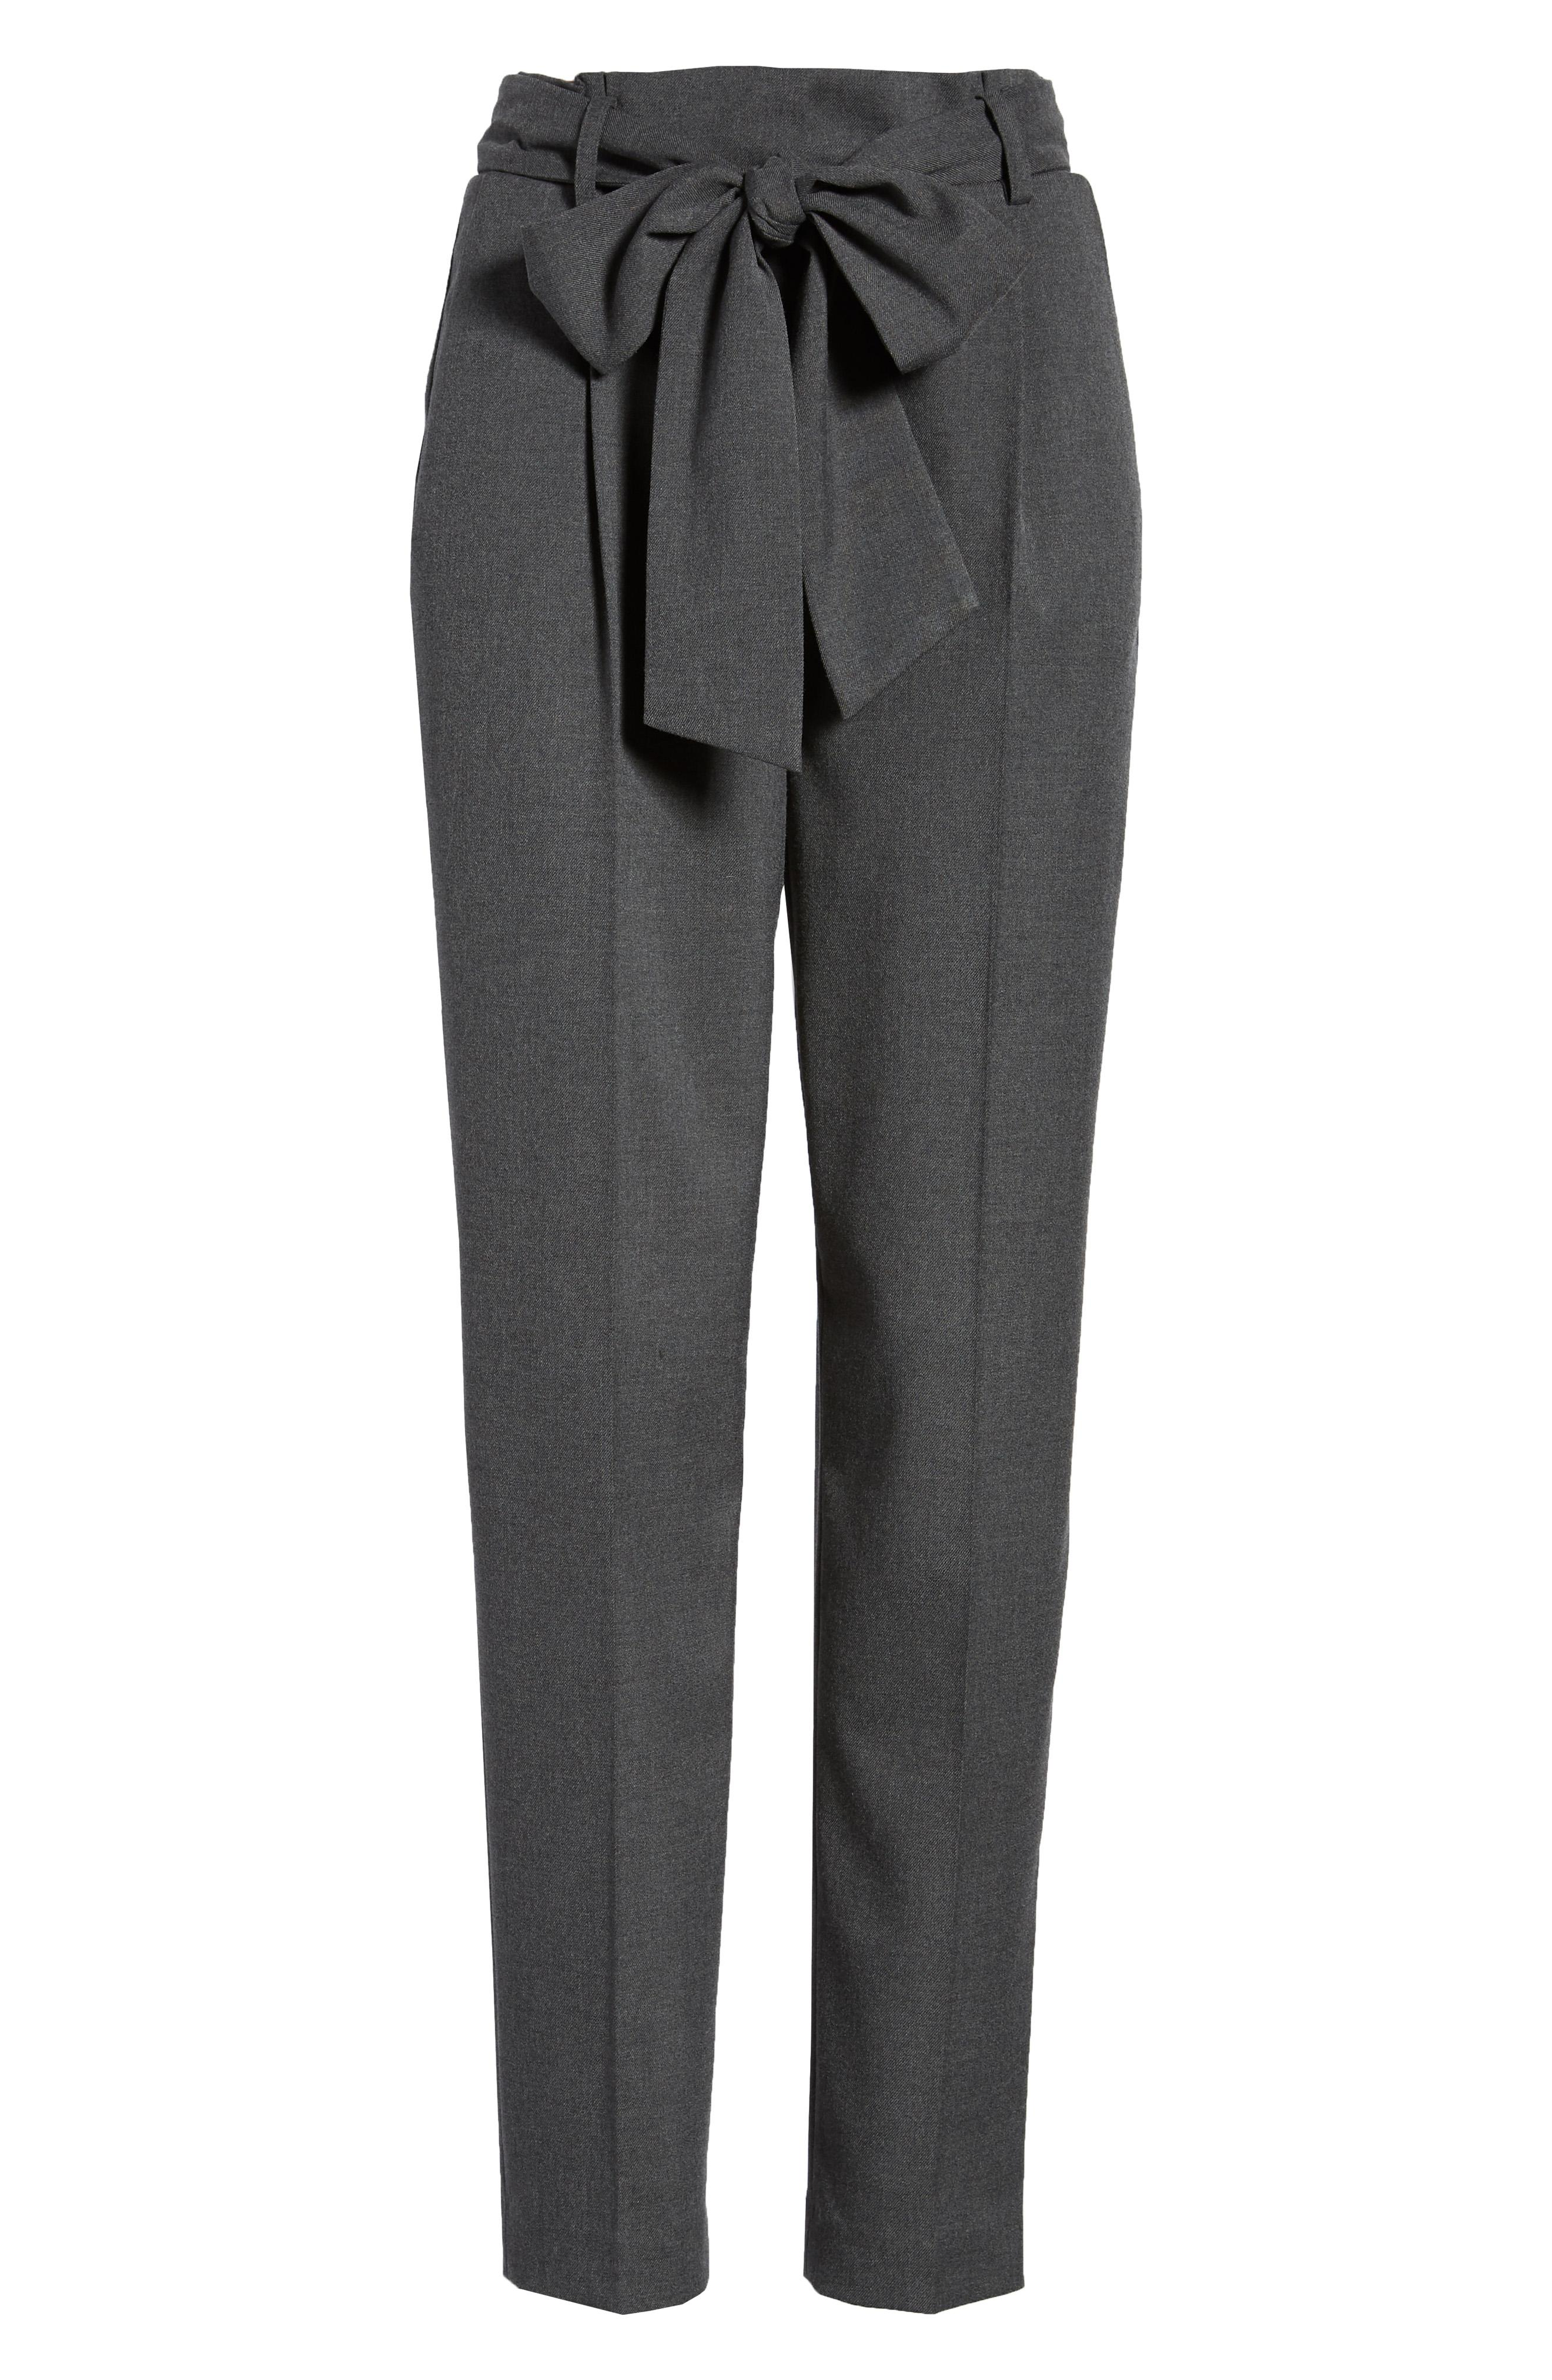 1901 Tie-Waist Pant -- Sale: $69.90 / After Sale: $89{ }(Image: Courtesy Nordstrom)